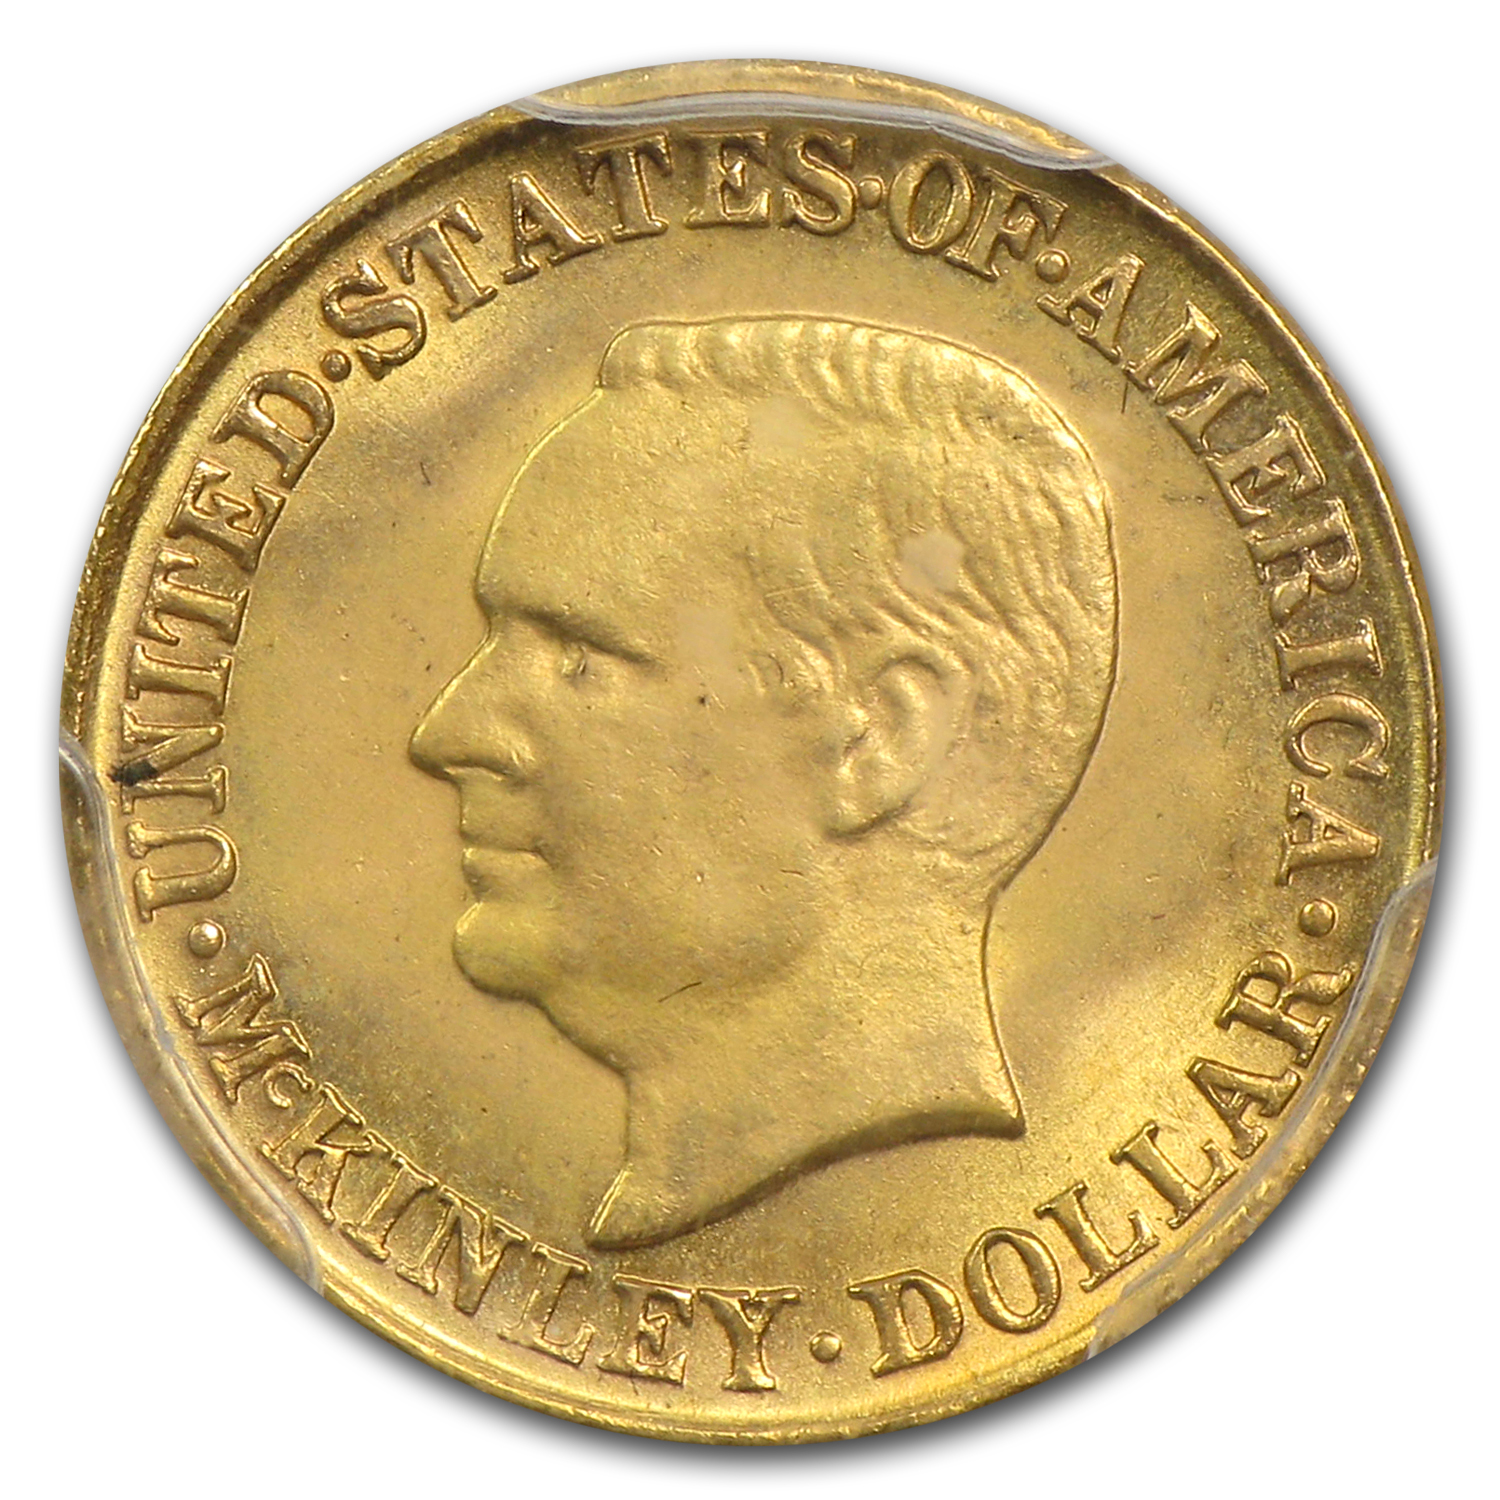 1917 Gold $1.00 McKinley Memorial MS-64 PCGS